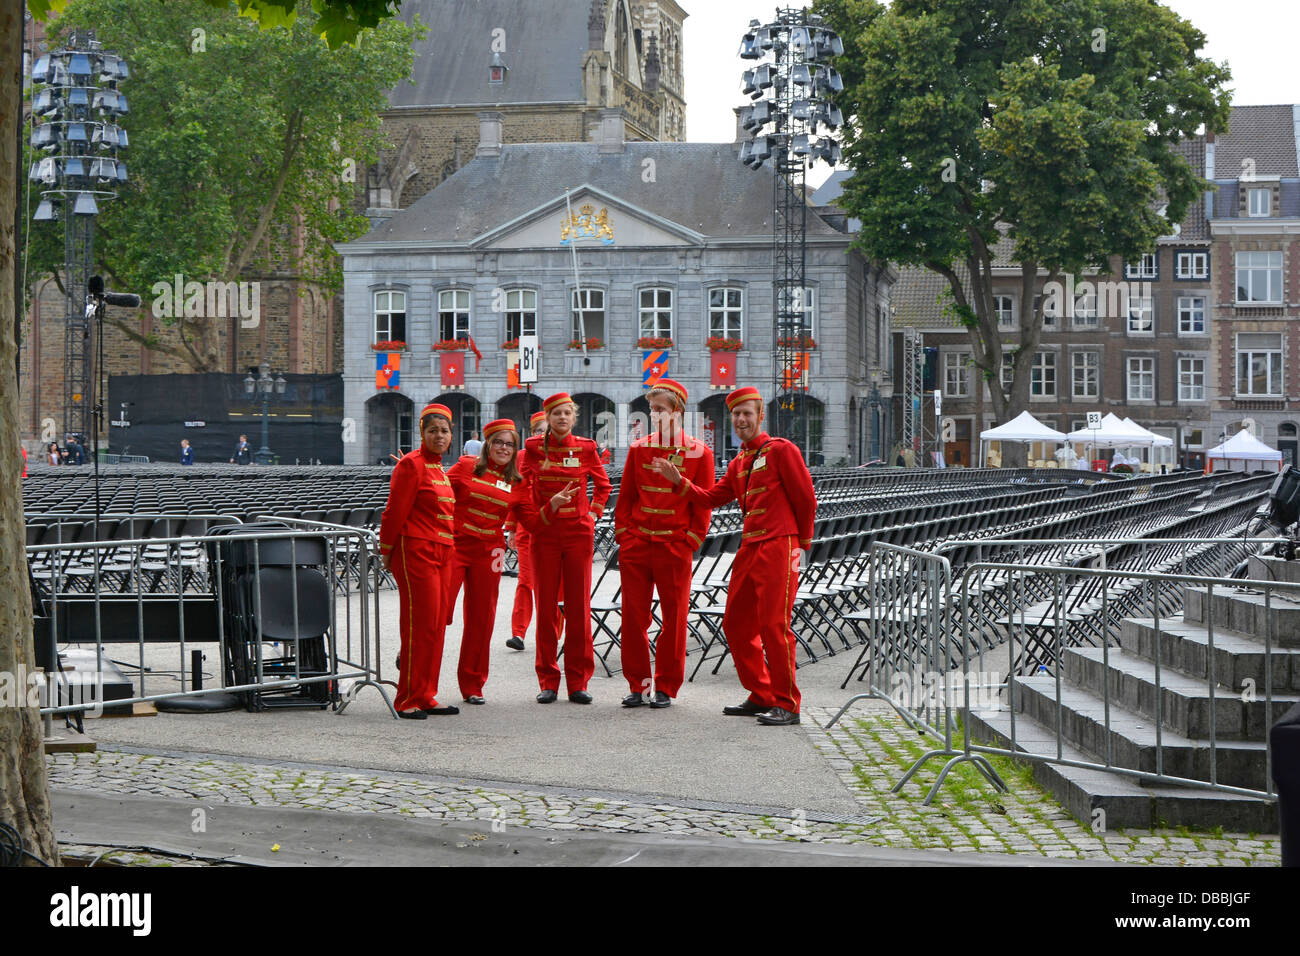 André Rieu concert seating with ushers dressed in bellboy uniforms ready to assist people to their places - Stock Image